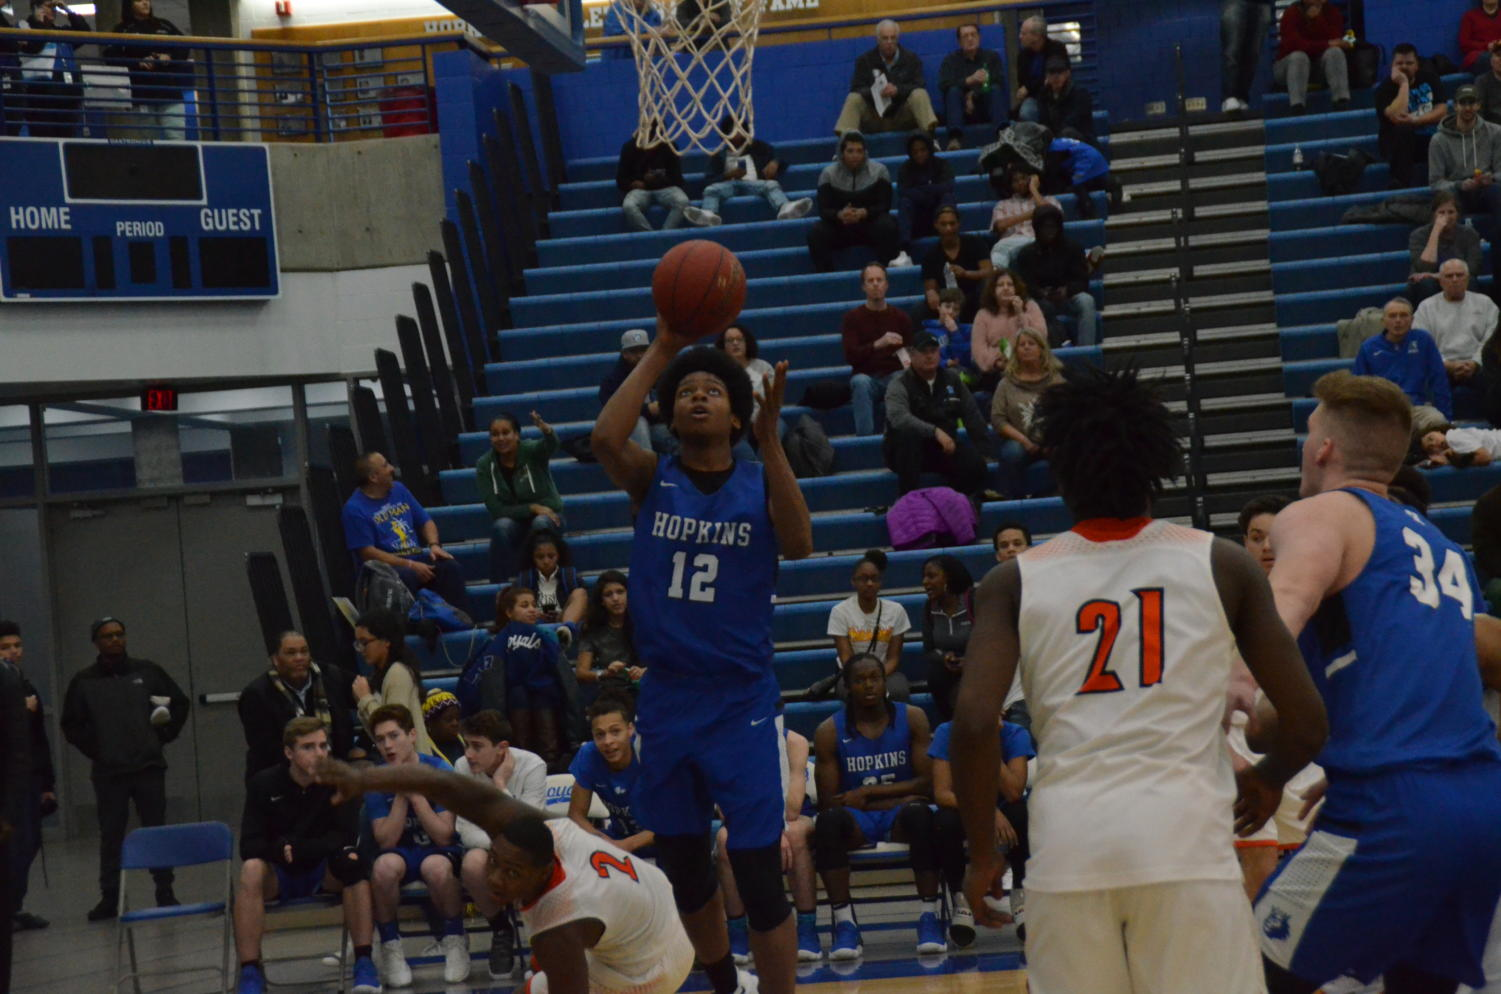 Kerwin Walton, junior, goes up for a shot in a game last season. Walton is set to start at point guard this season for the Royals.